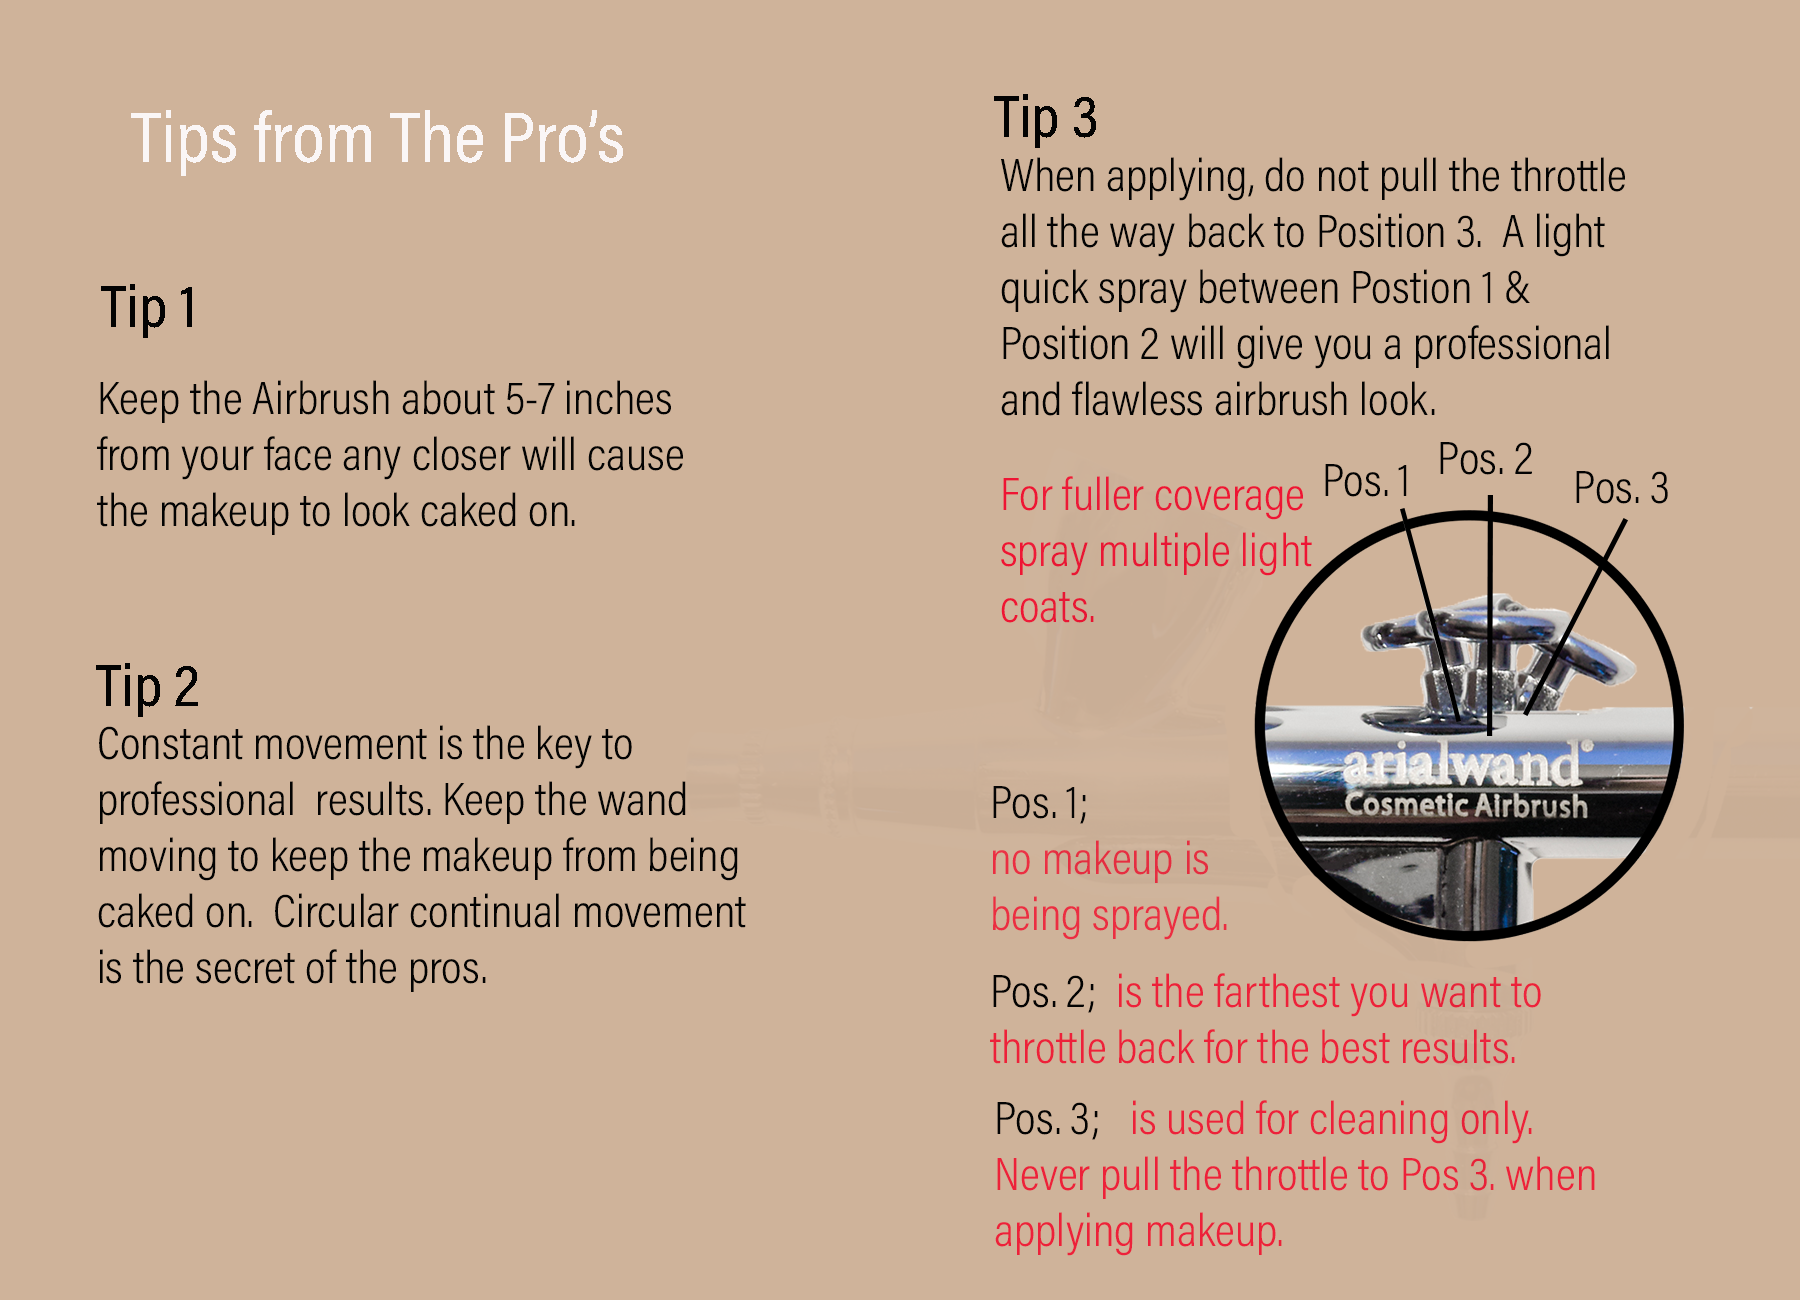 Airbrush Makeup Tips From The Pro's